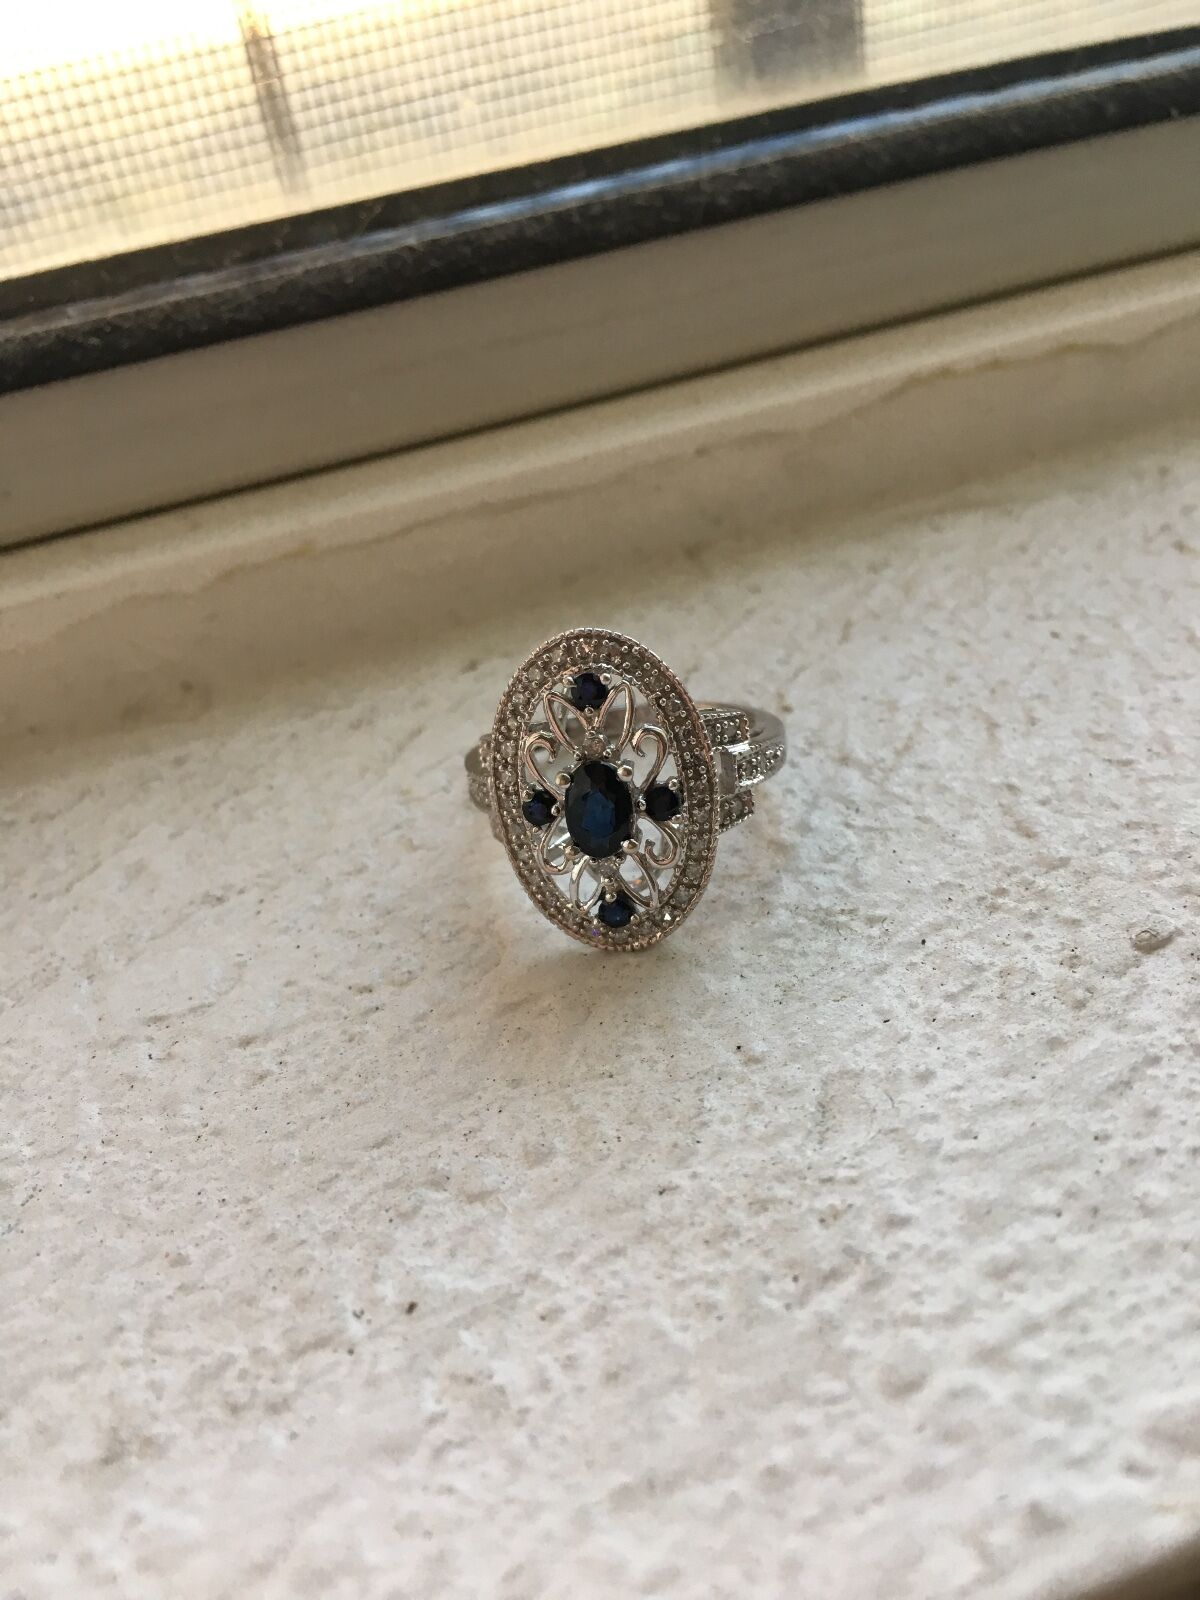 Vintage 14k white gold, diamond, bluee sapphire size 7 ring